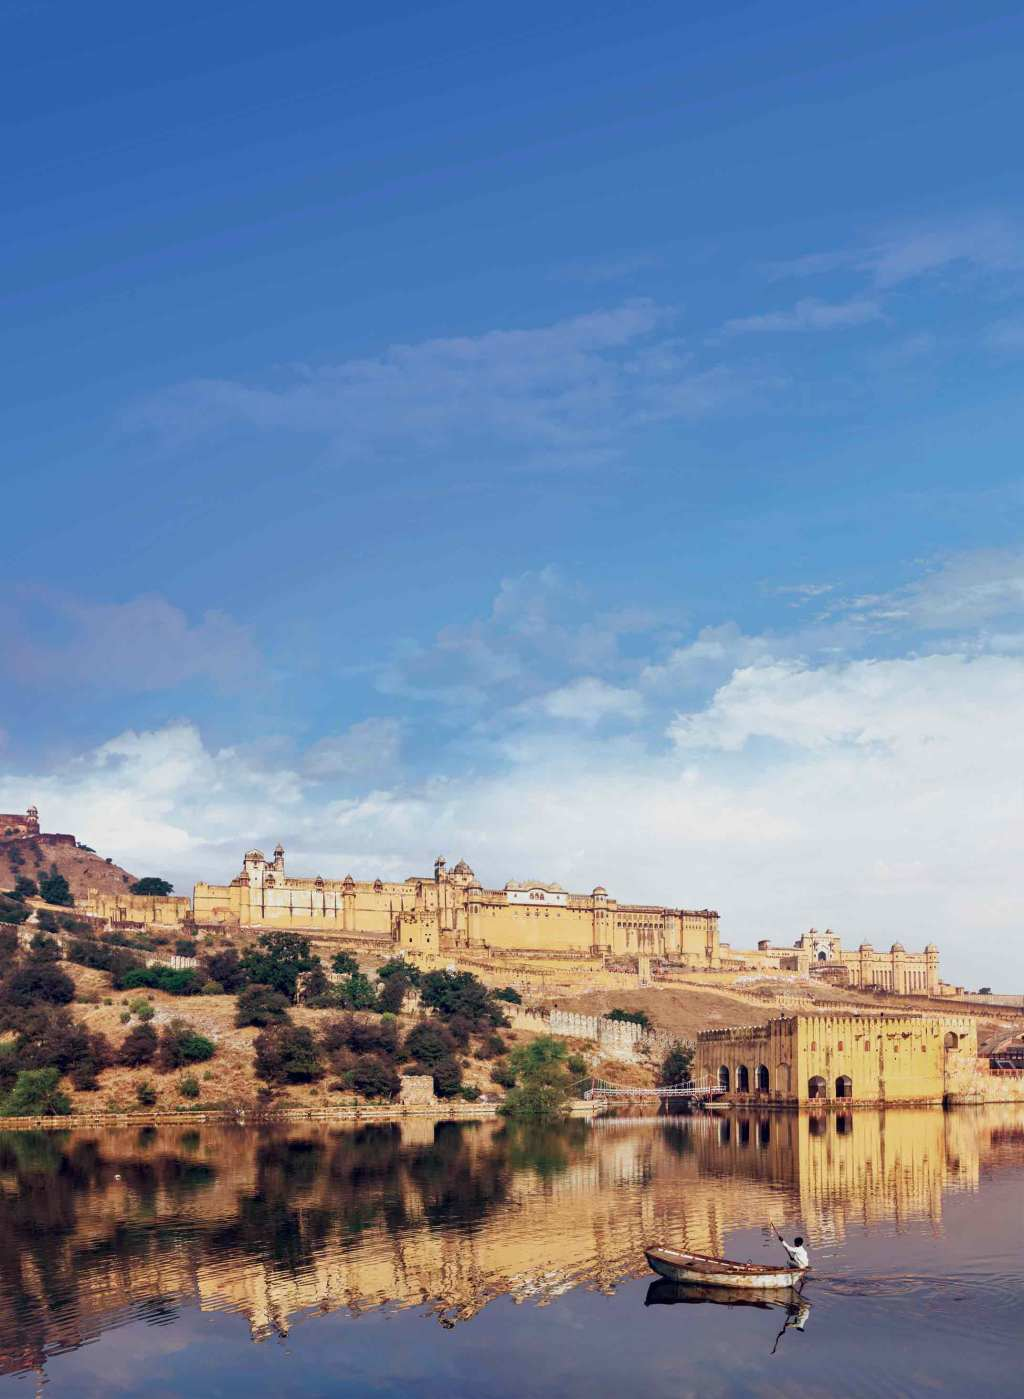 The Amber Fort in Jaipur, India